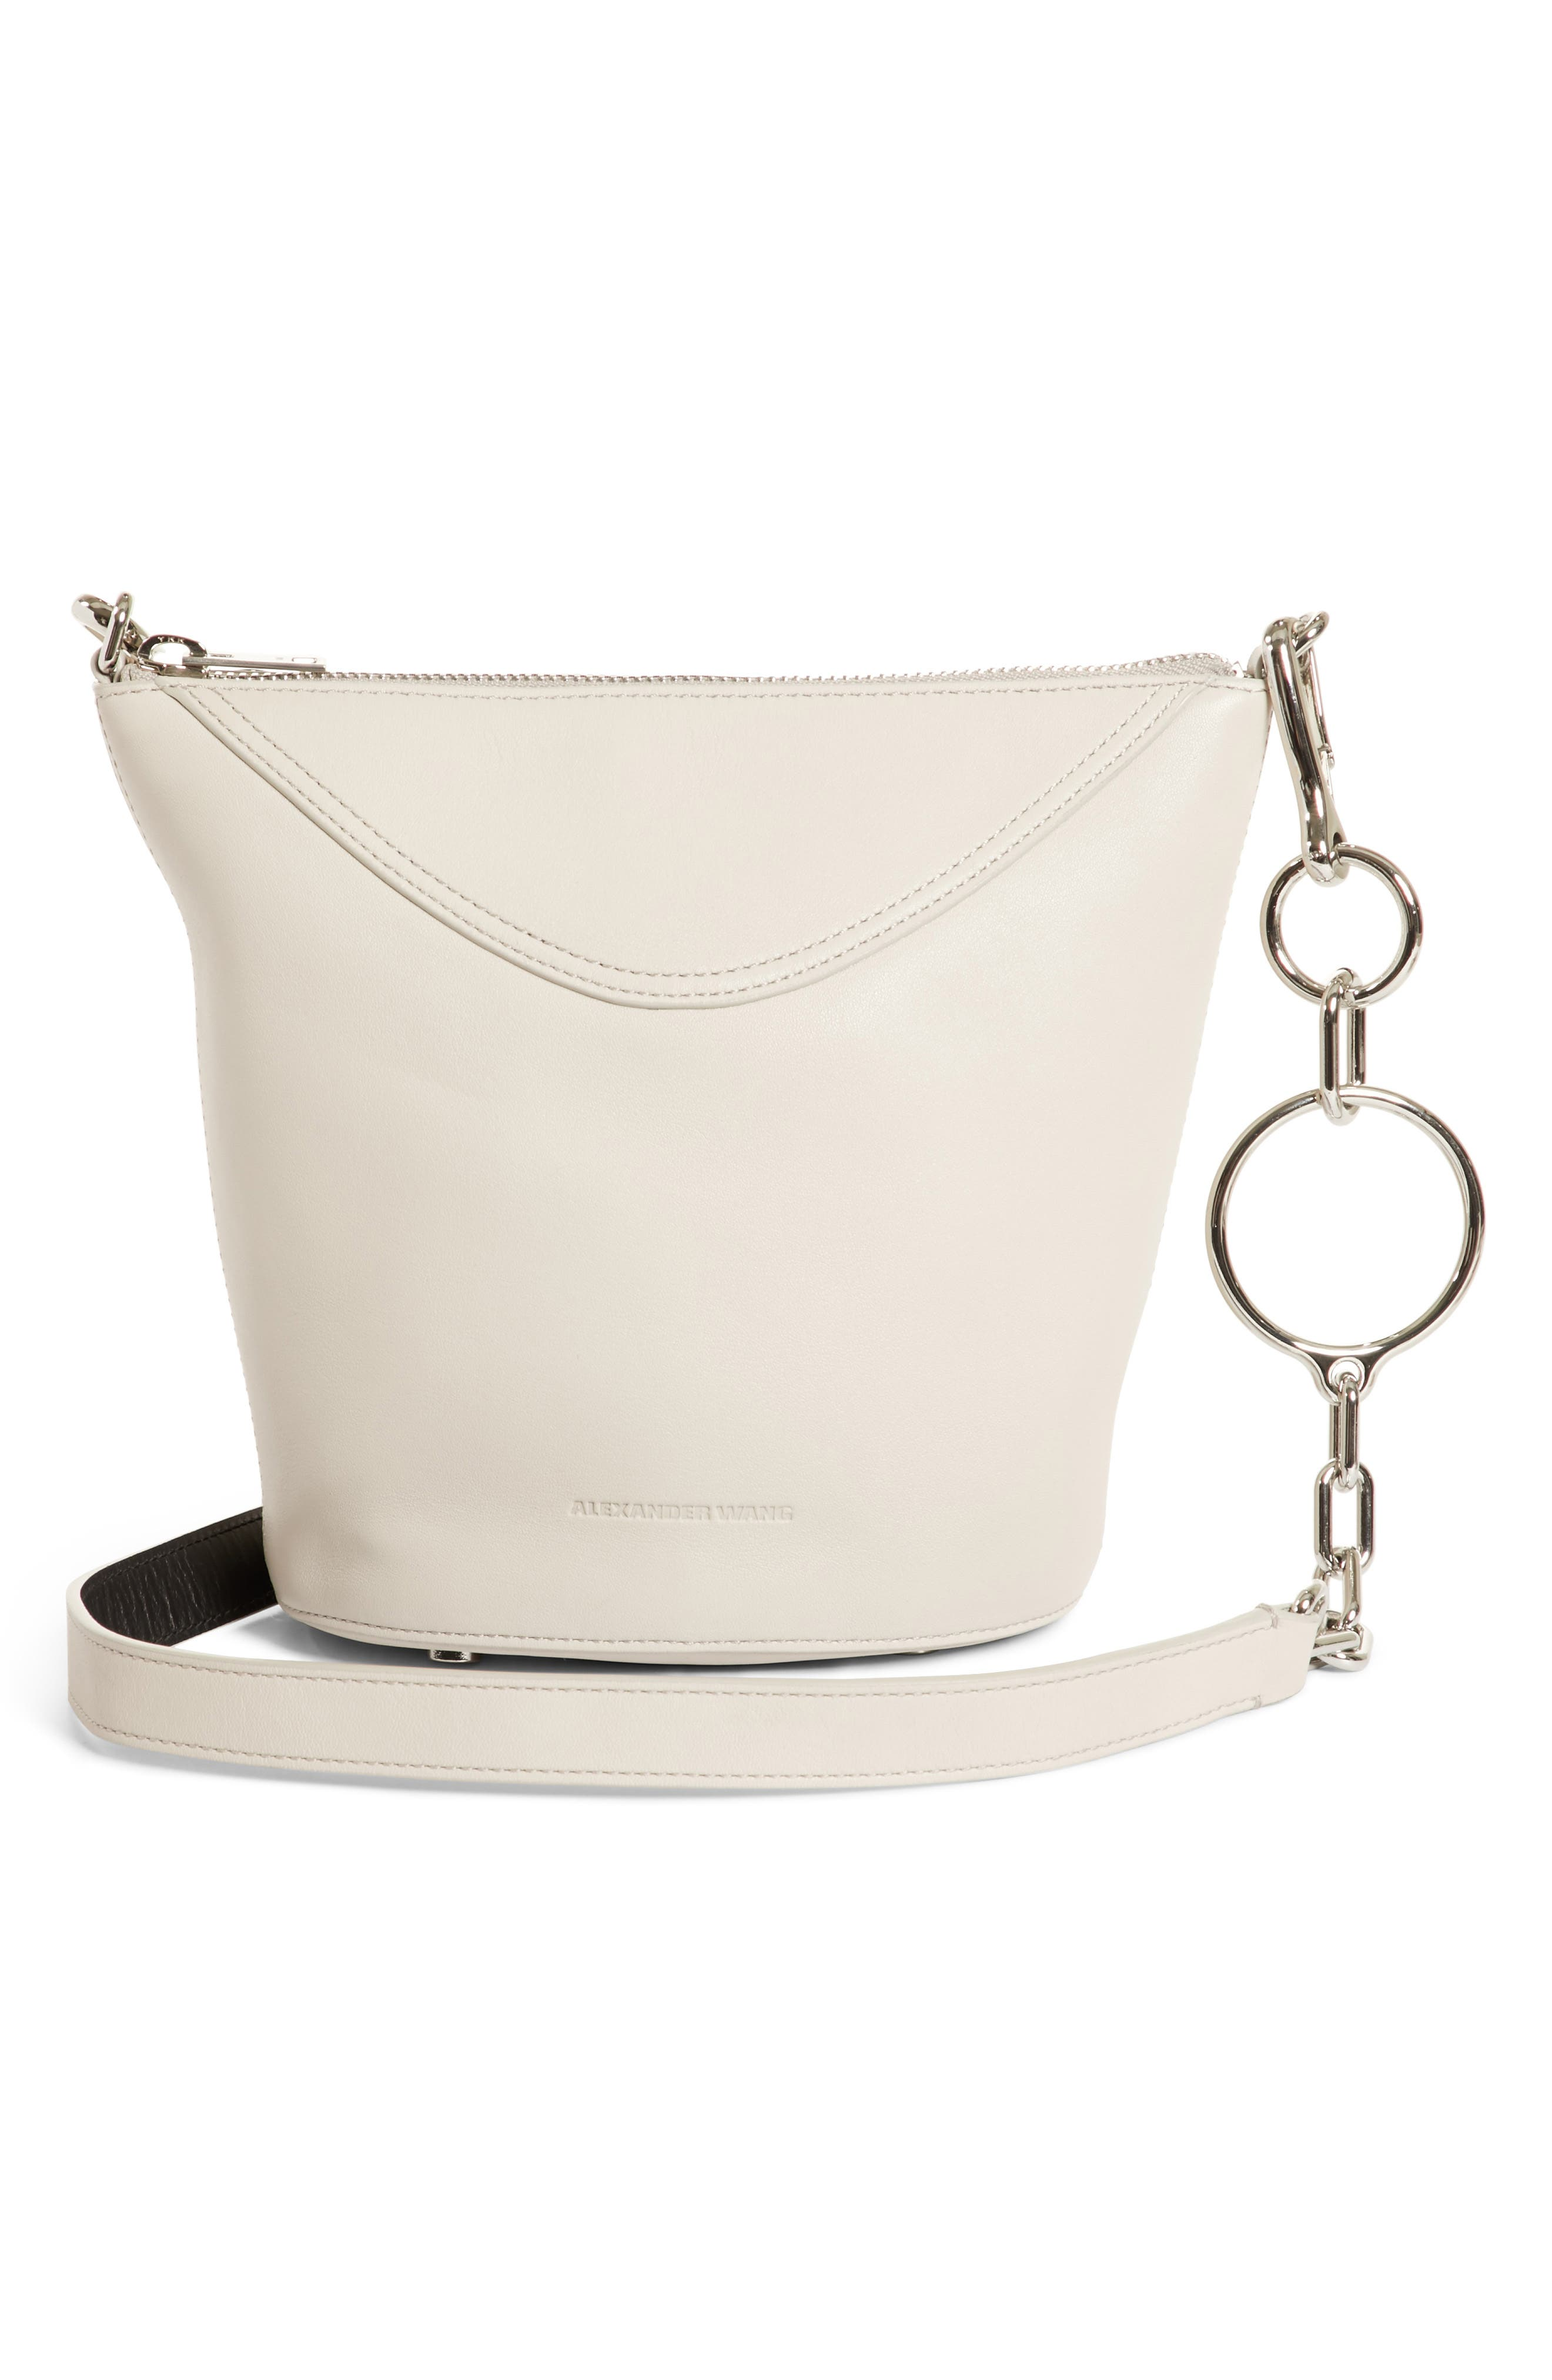 Ace Leather Bucket Bag,                             Alternate thumbnail 3, color,                             Smoke